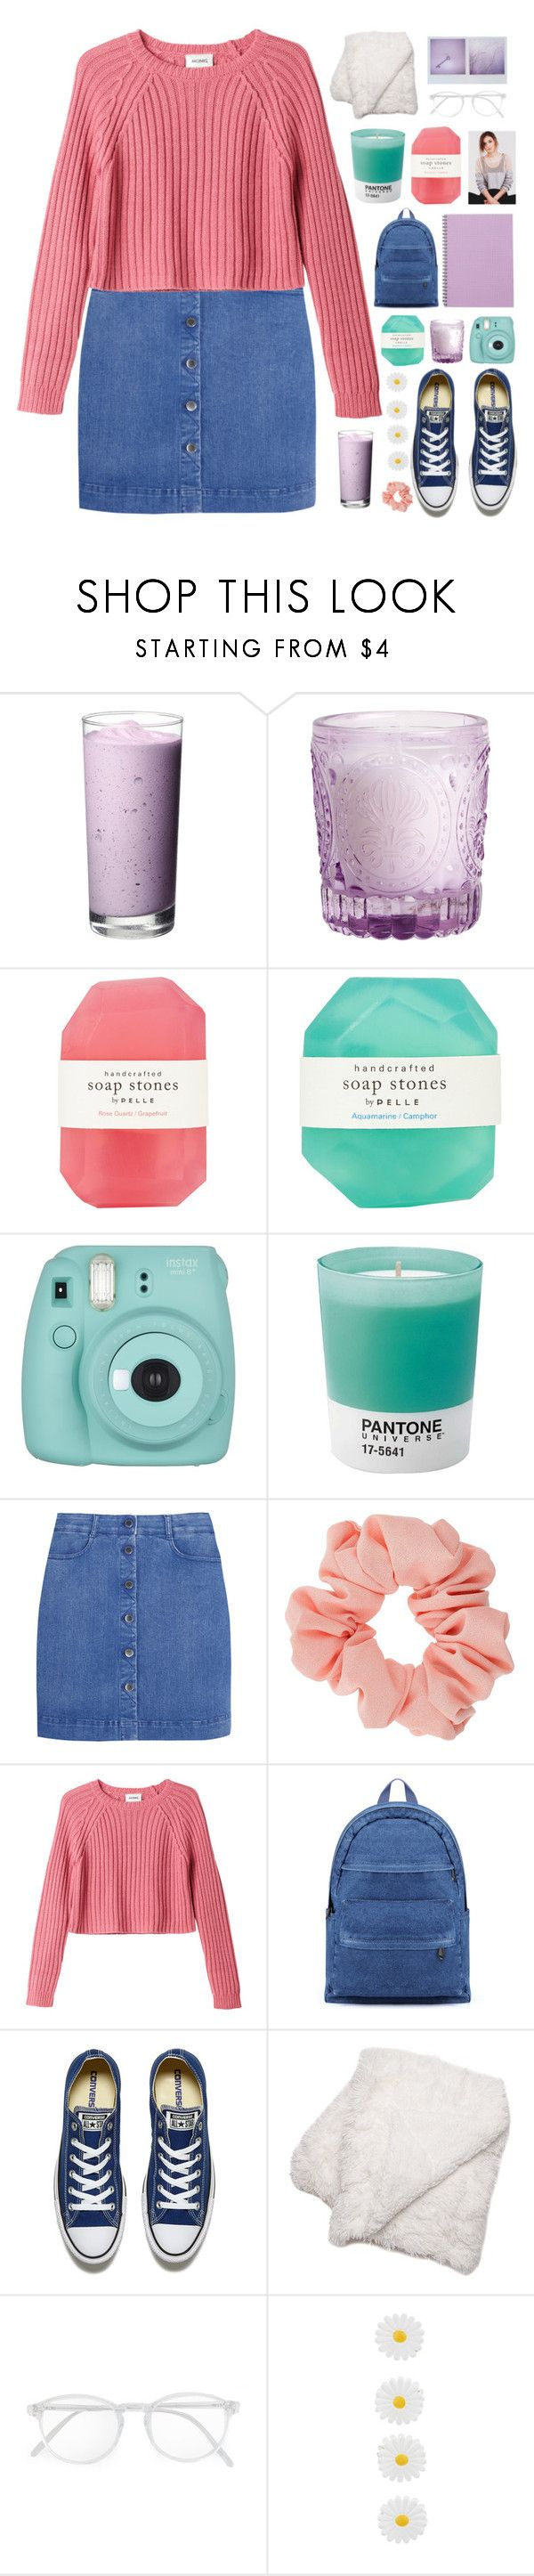 """(7)"" by via-m ❤ liked on Polyvore featuring H&M, Pelle, Fujifilm, Pantone, STELLA McCARTNEY, Miss Selfridge, Monki, Converse, RetroSuperFuture and Monsoon"